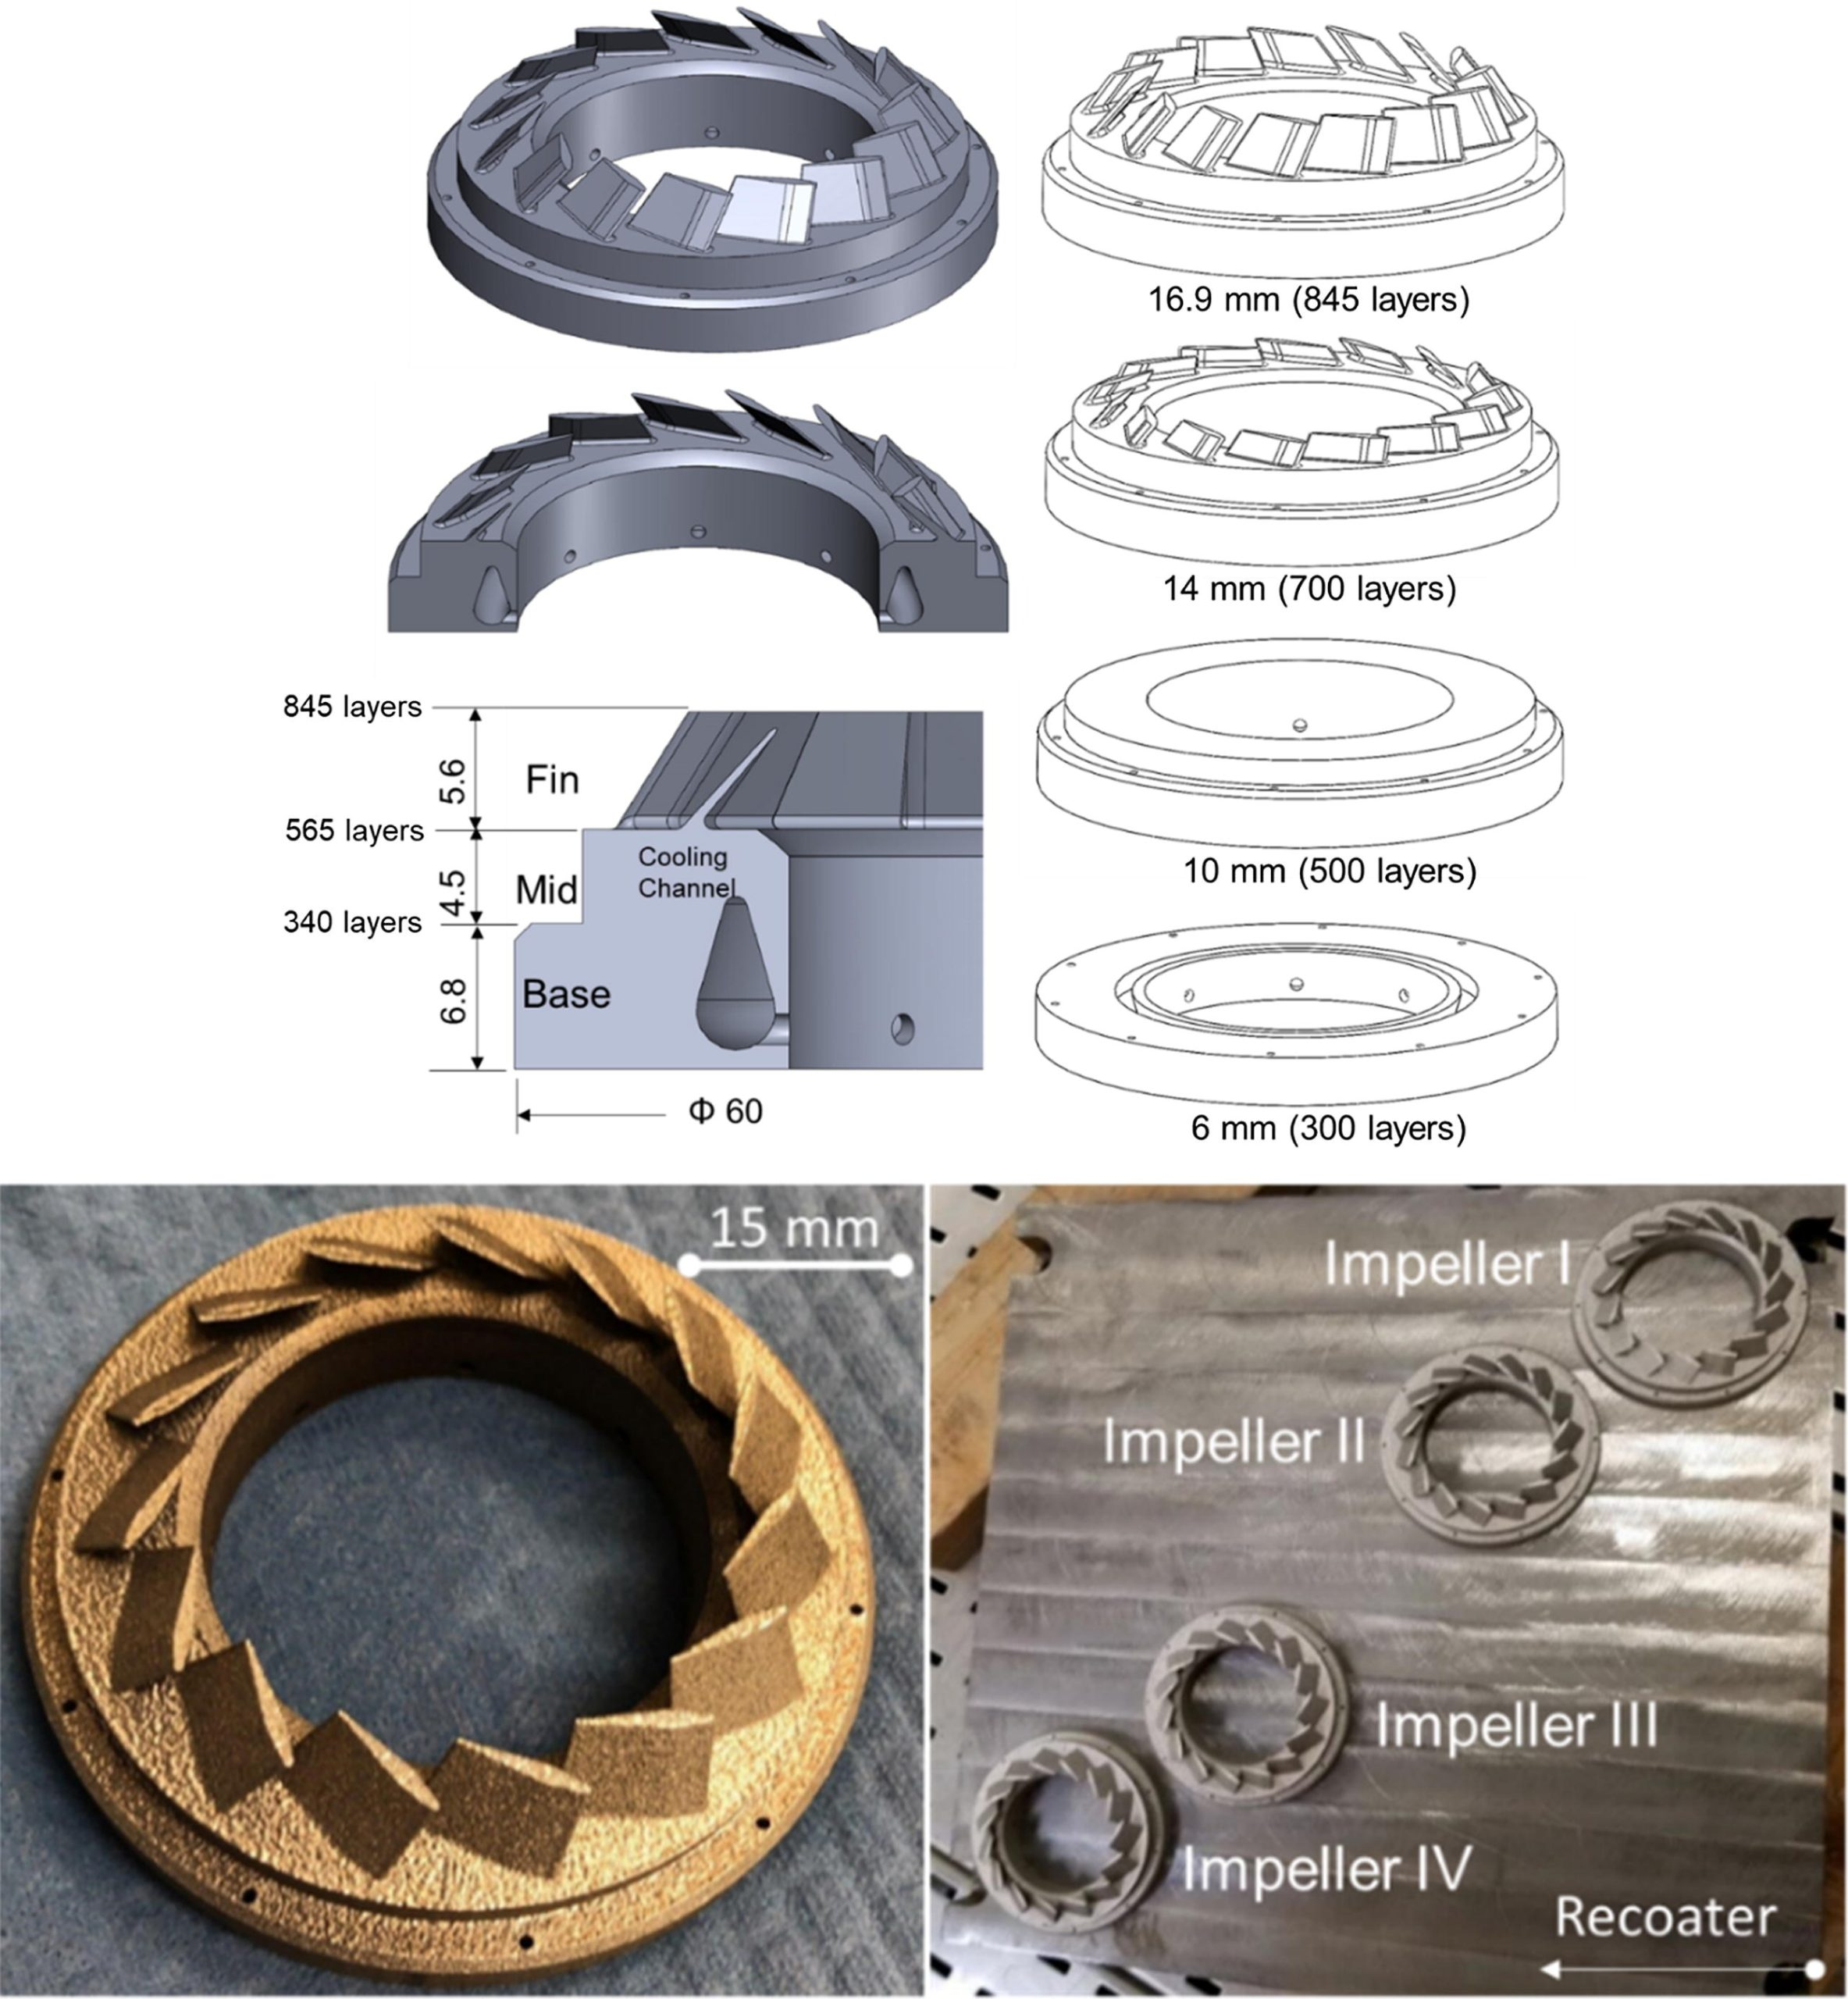 Cross section of an impeller showing the three build sections - base, mid, and fin - that the researchers used to test their digital twin. Image via Materials & Design.